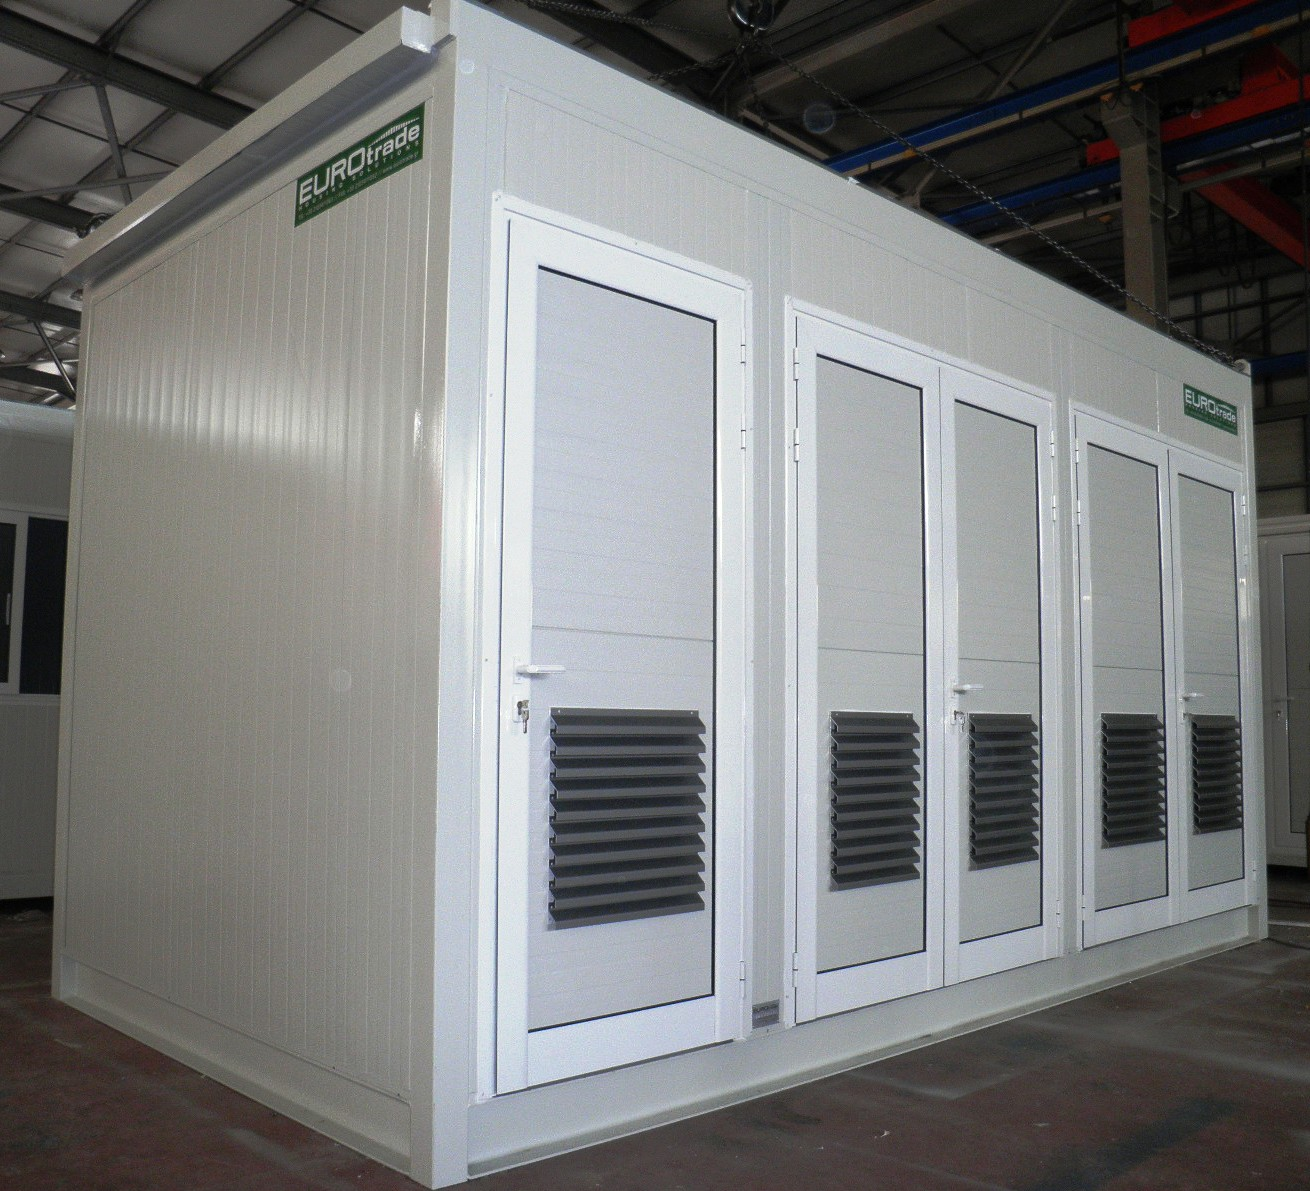 Heavy Equipment Shelters : Heavy duty equipment shelters by eurotrade s a